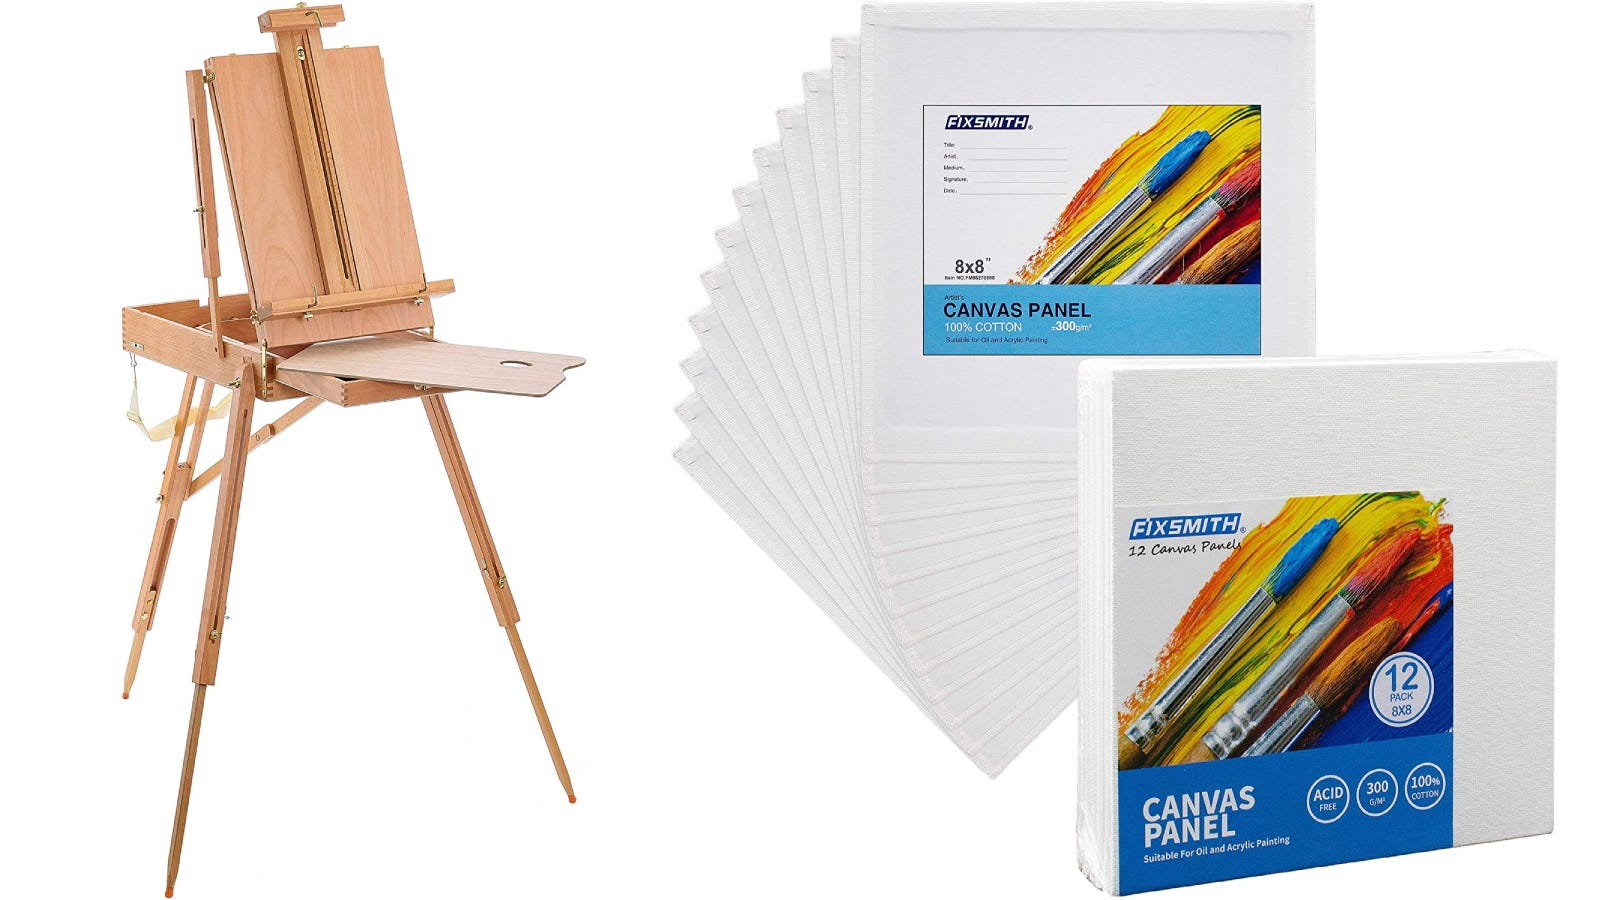 The U.S. Art Supply French-Style Easel and FIXSMITH 12-Pack of canvas panels.